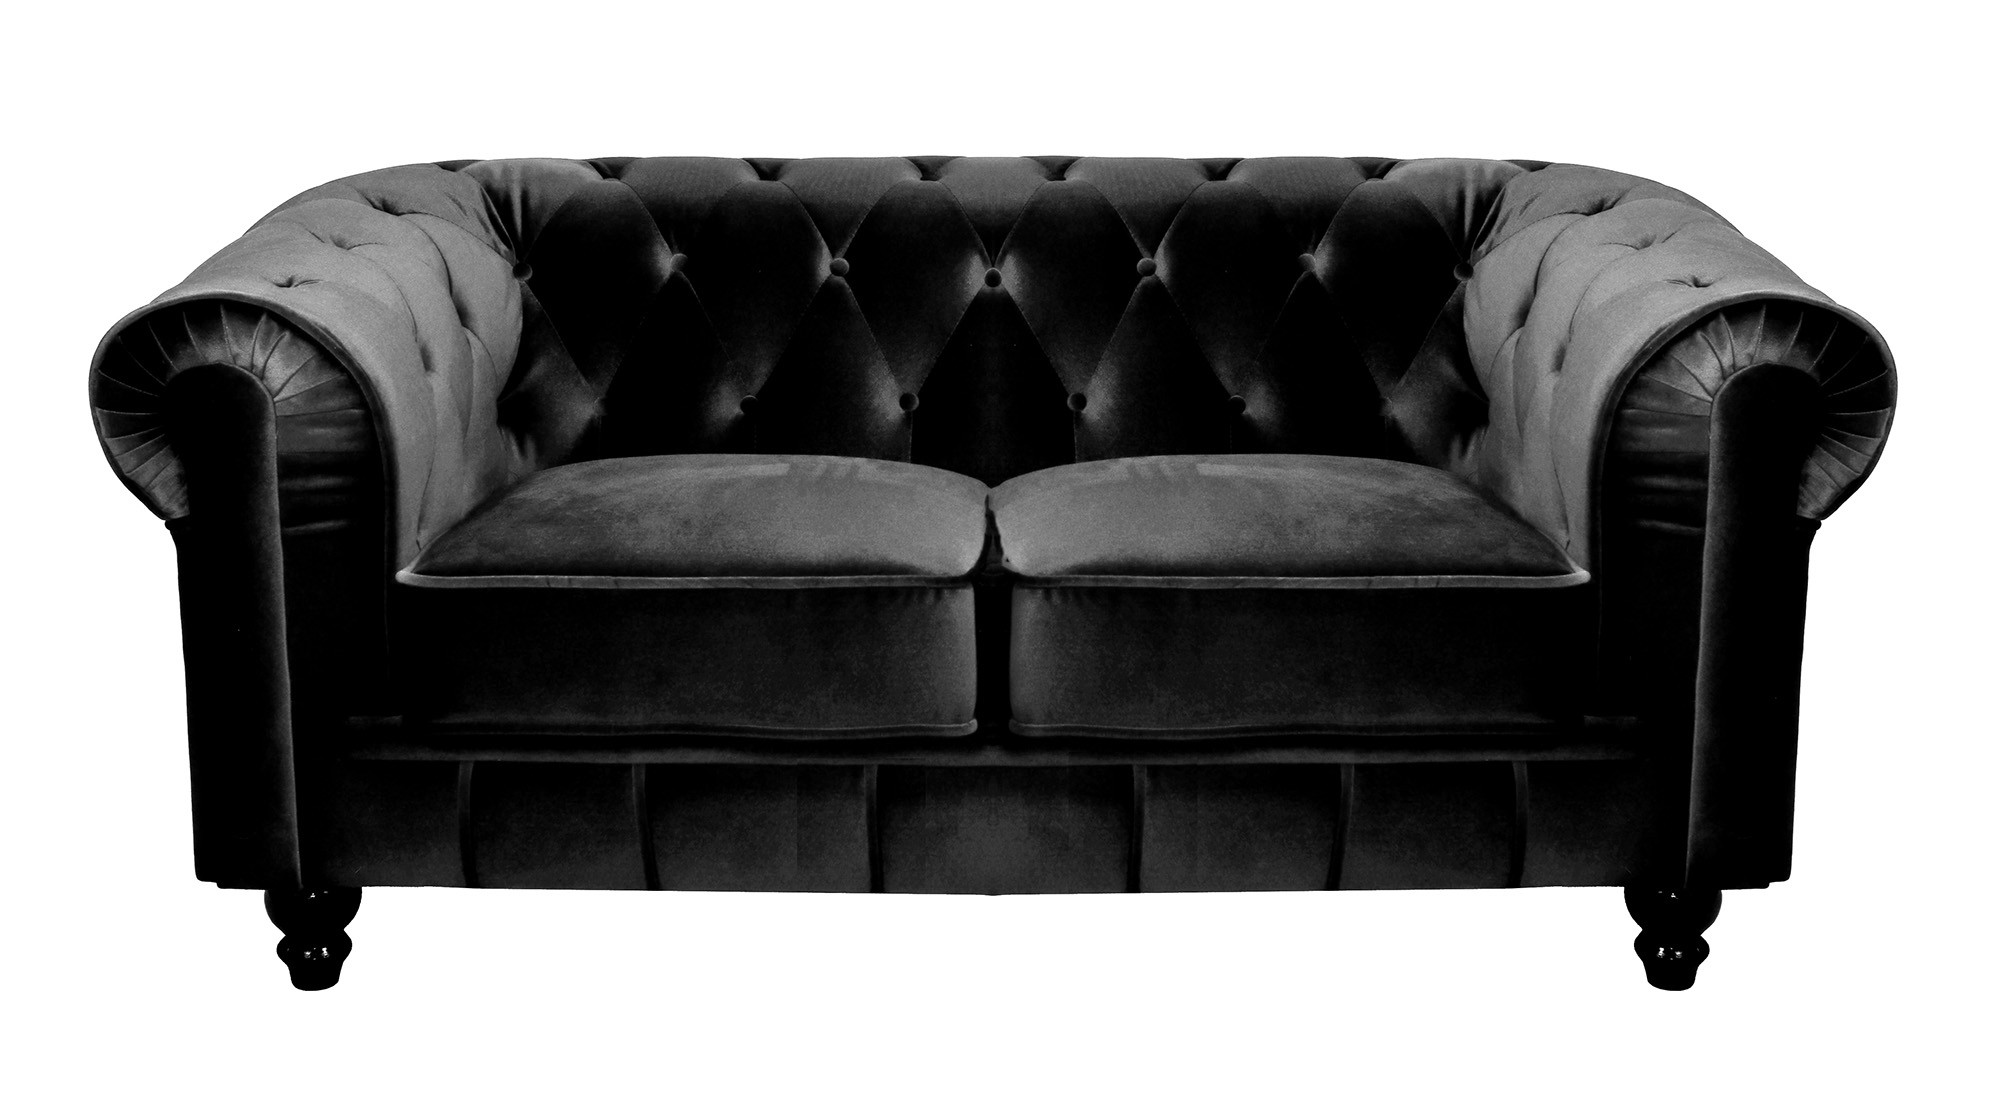 Canap chesterfield velours 2 places canap id es de - Canape chesterfield velour ...